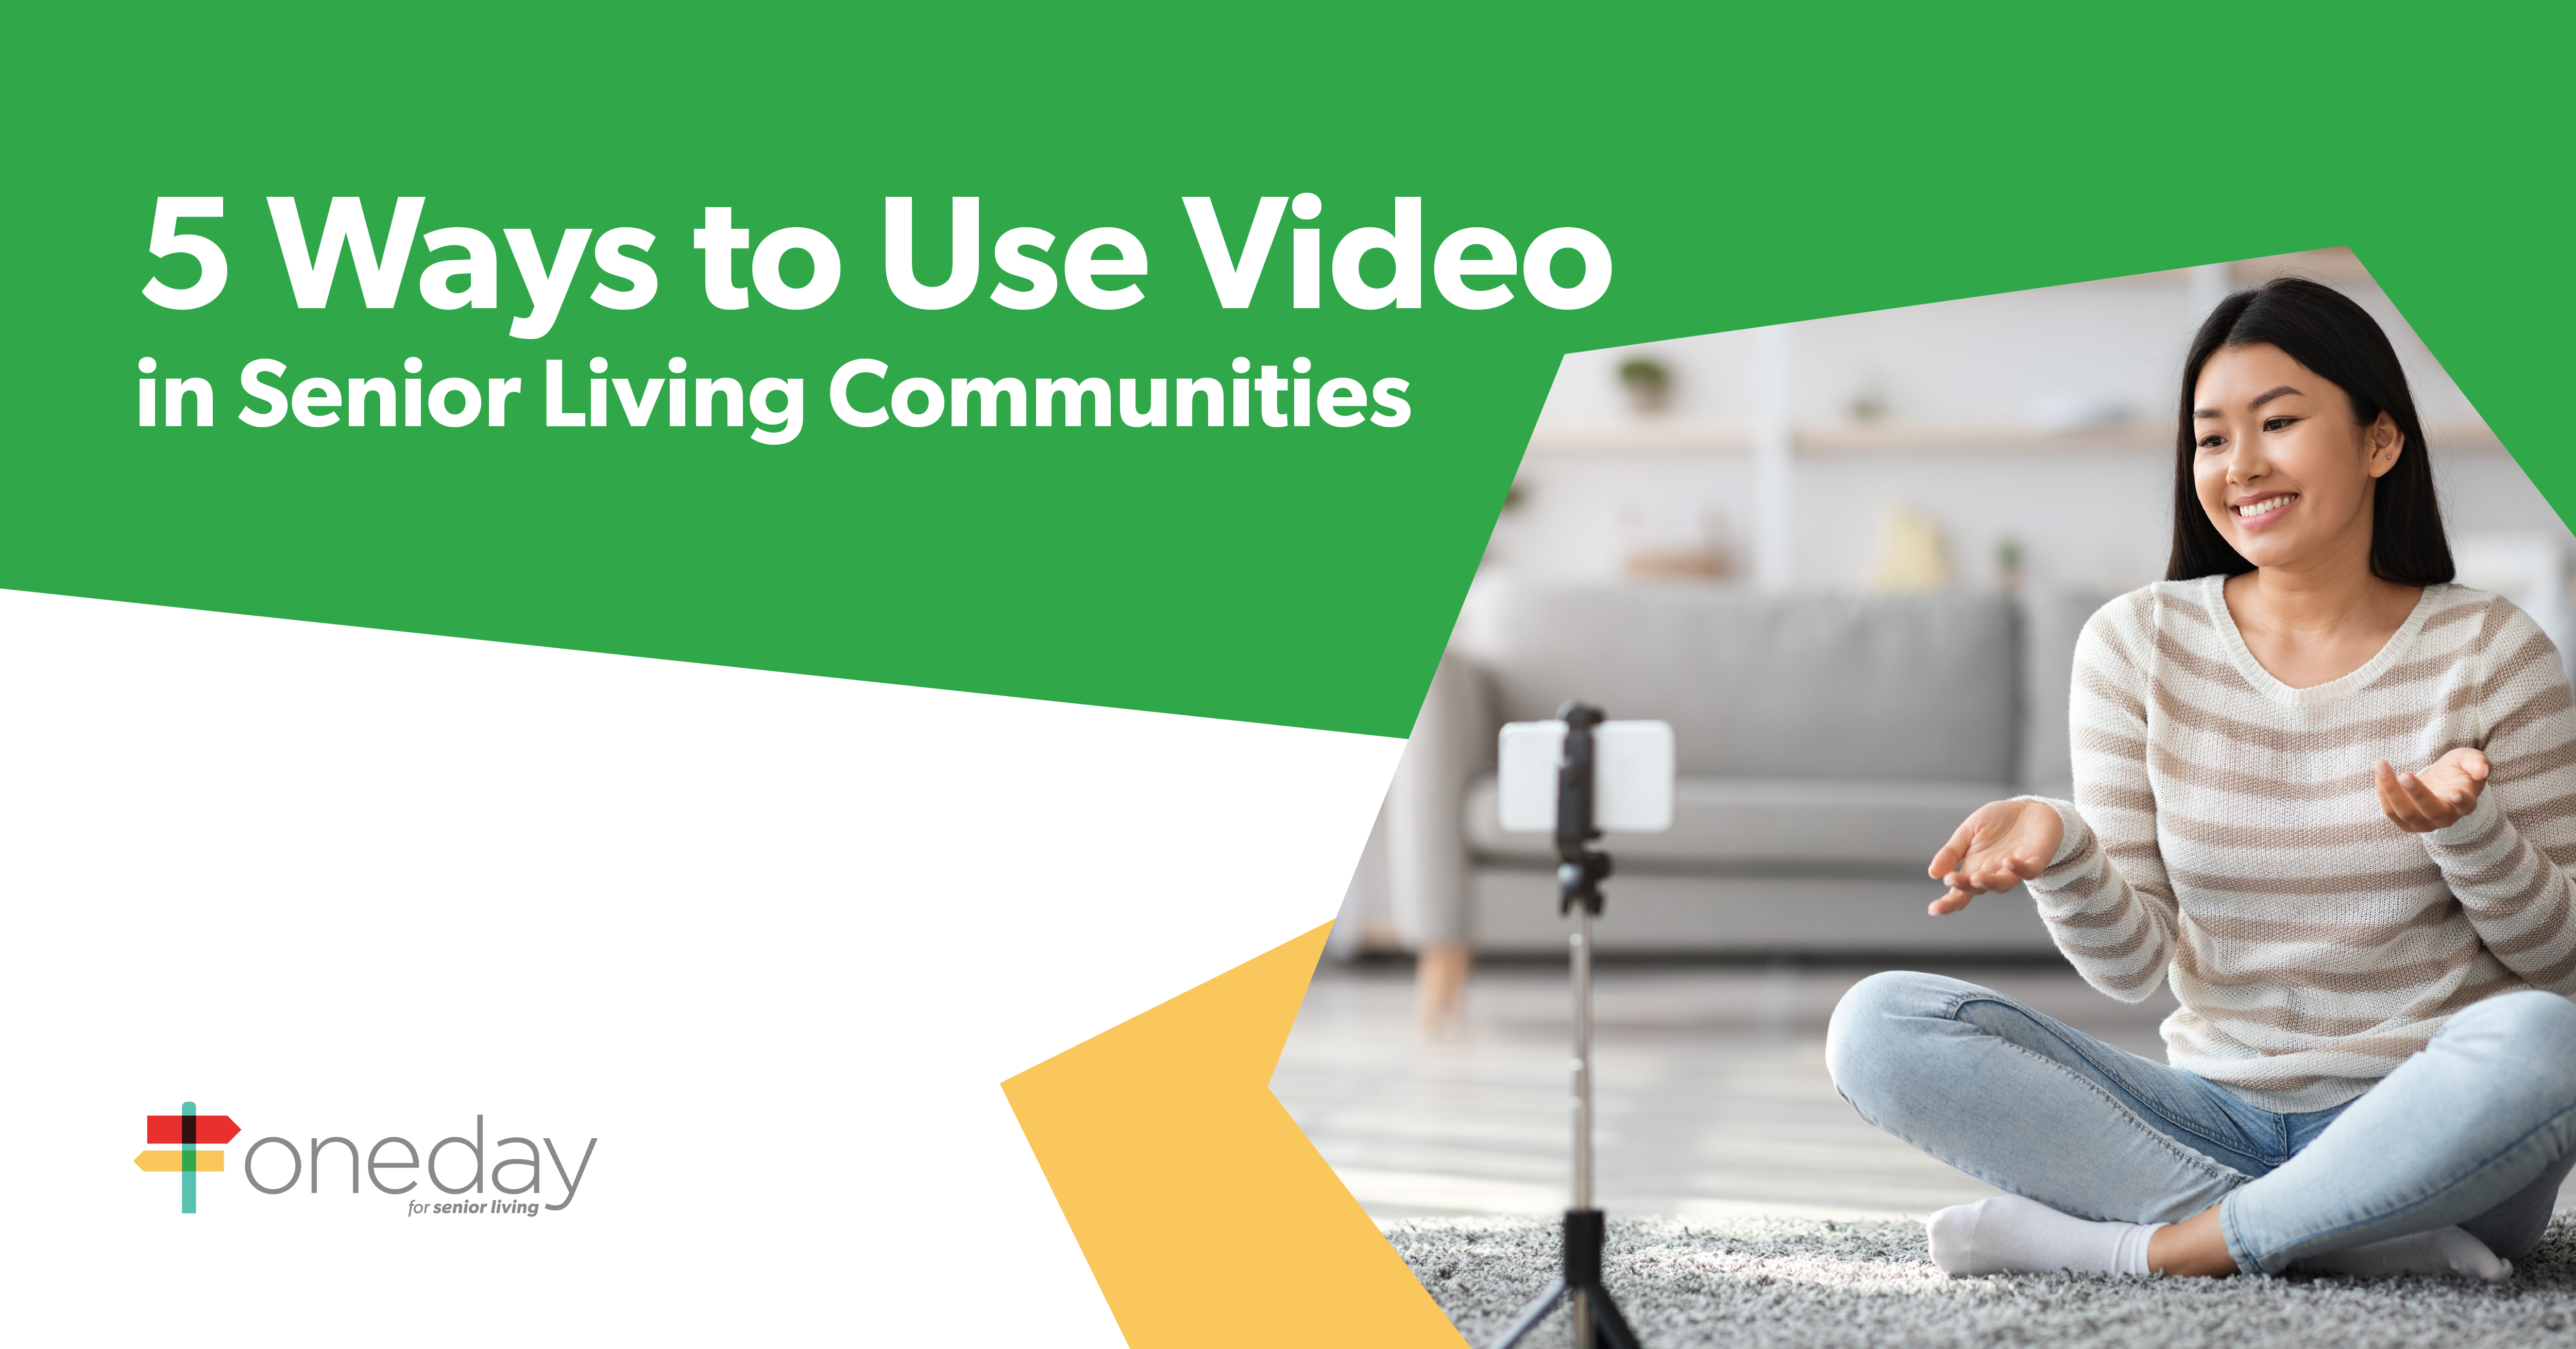 Tips and insights on different ways senior living marketing and sales teams can use video to drive occupancy and keep employees engaged.